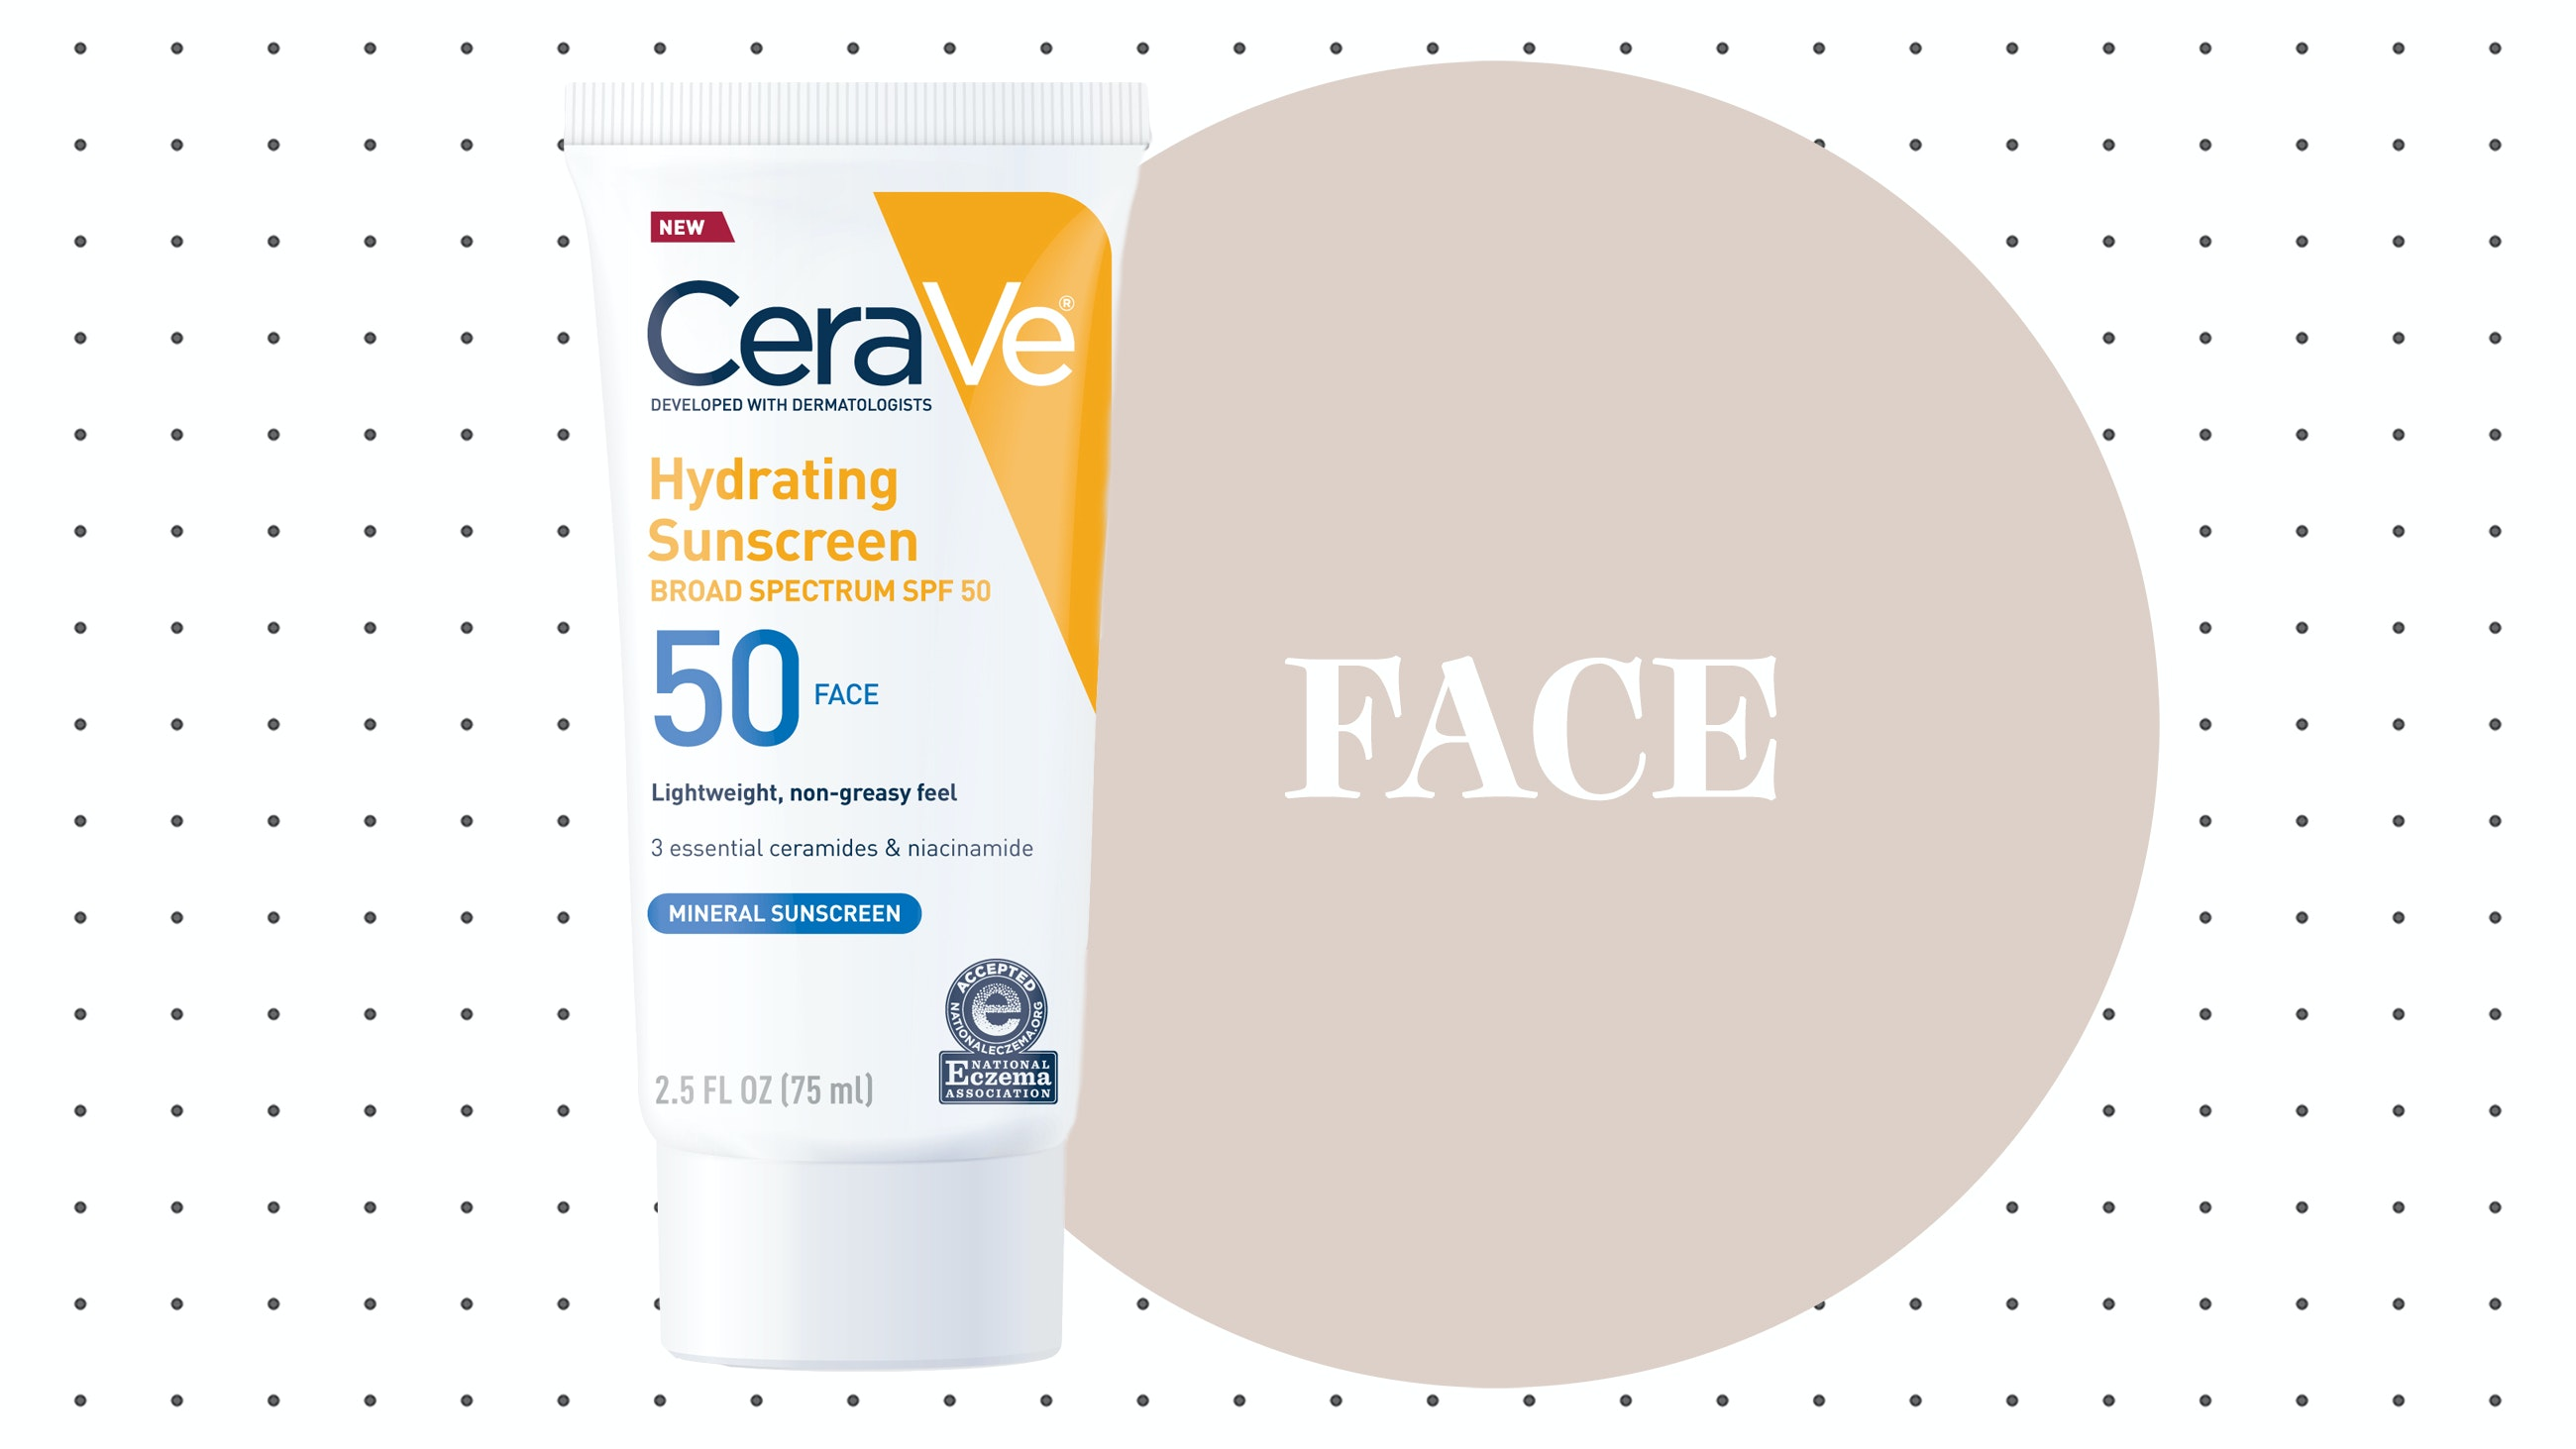 CeraVe Hydrating Sunscreen 50 Face